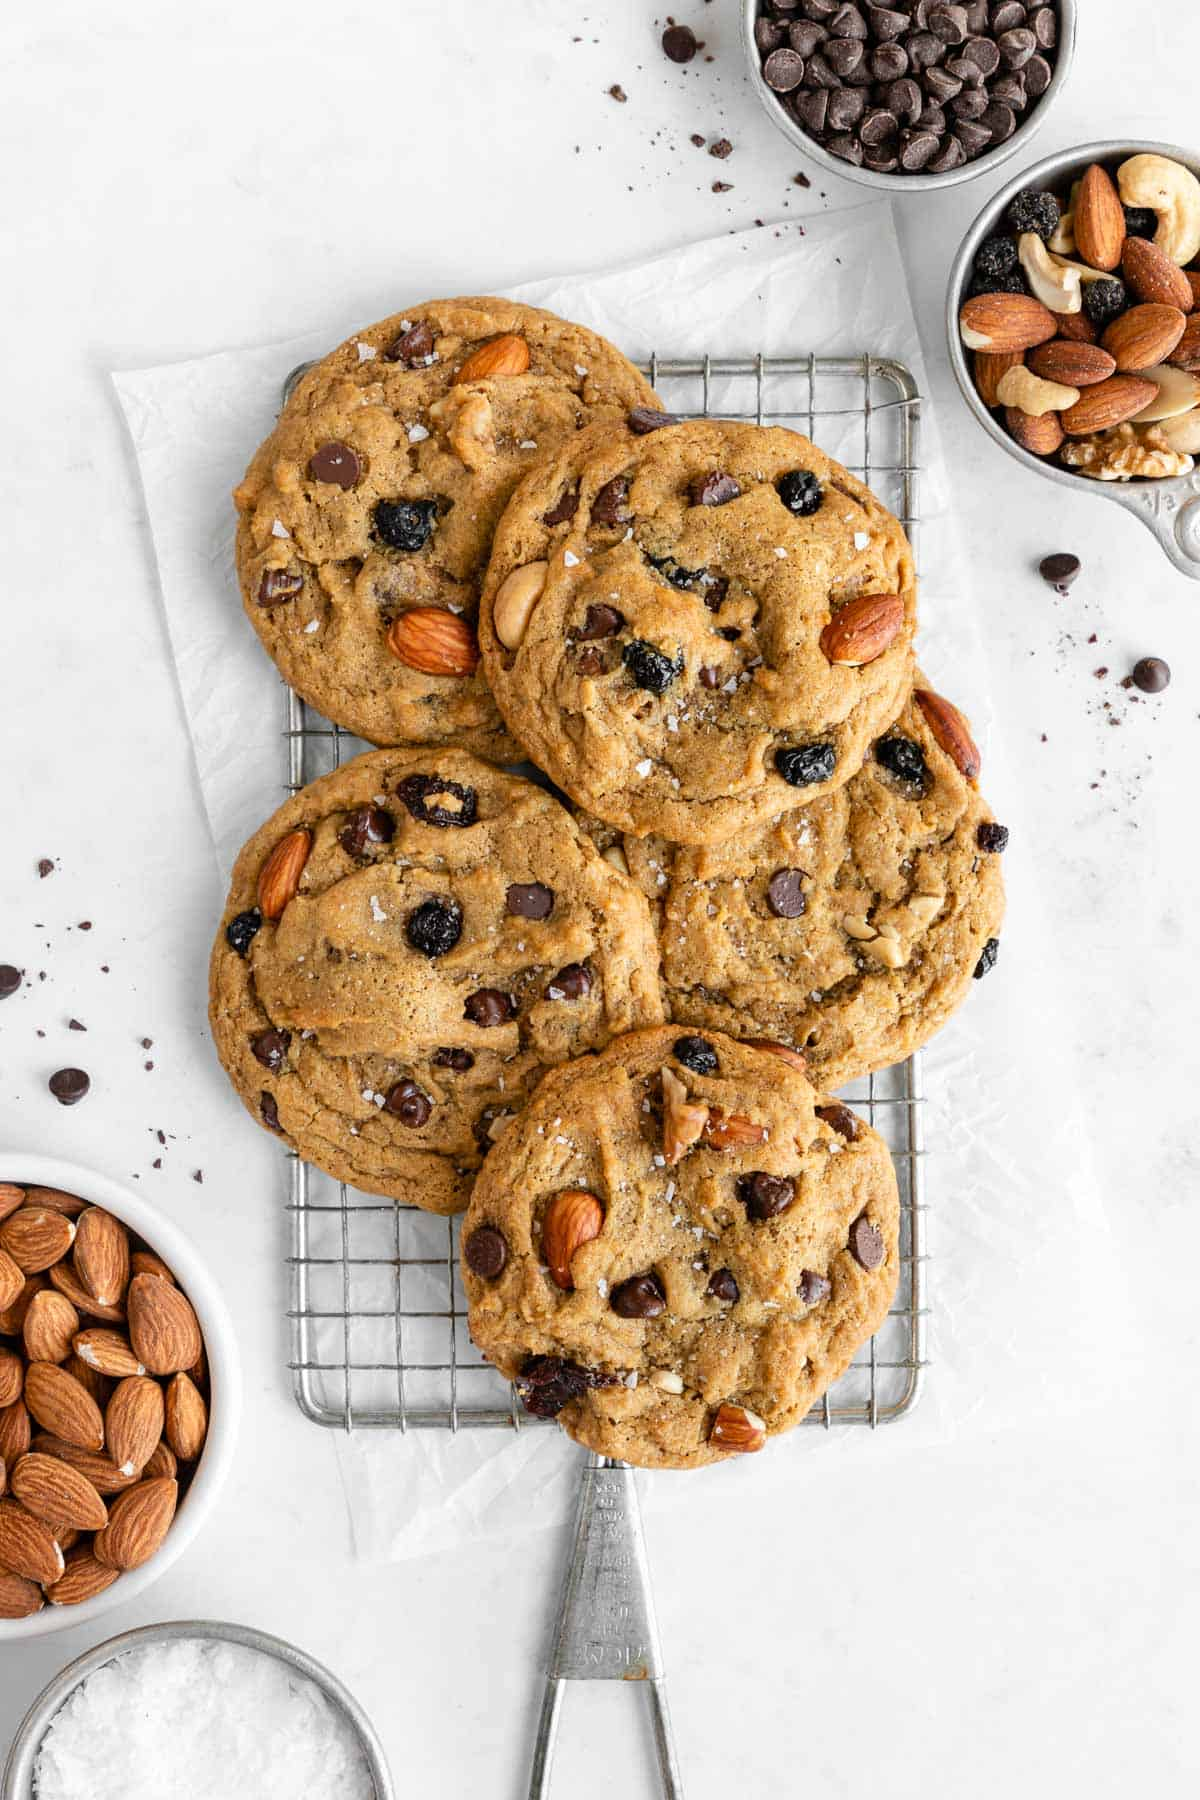 a pile of vegan trail mix cookies on a cooling rack surrounded by bowls of chocolate chips, nuts, and dried fruit